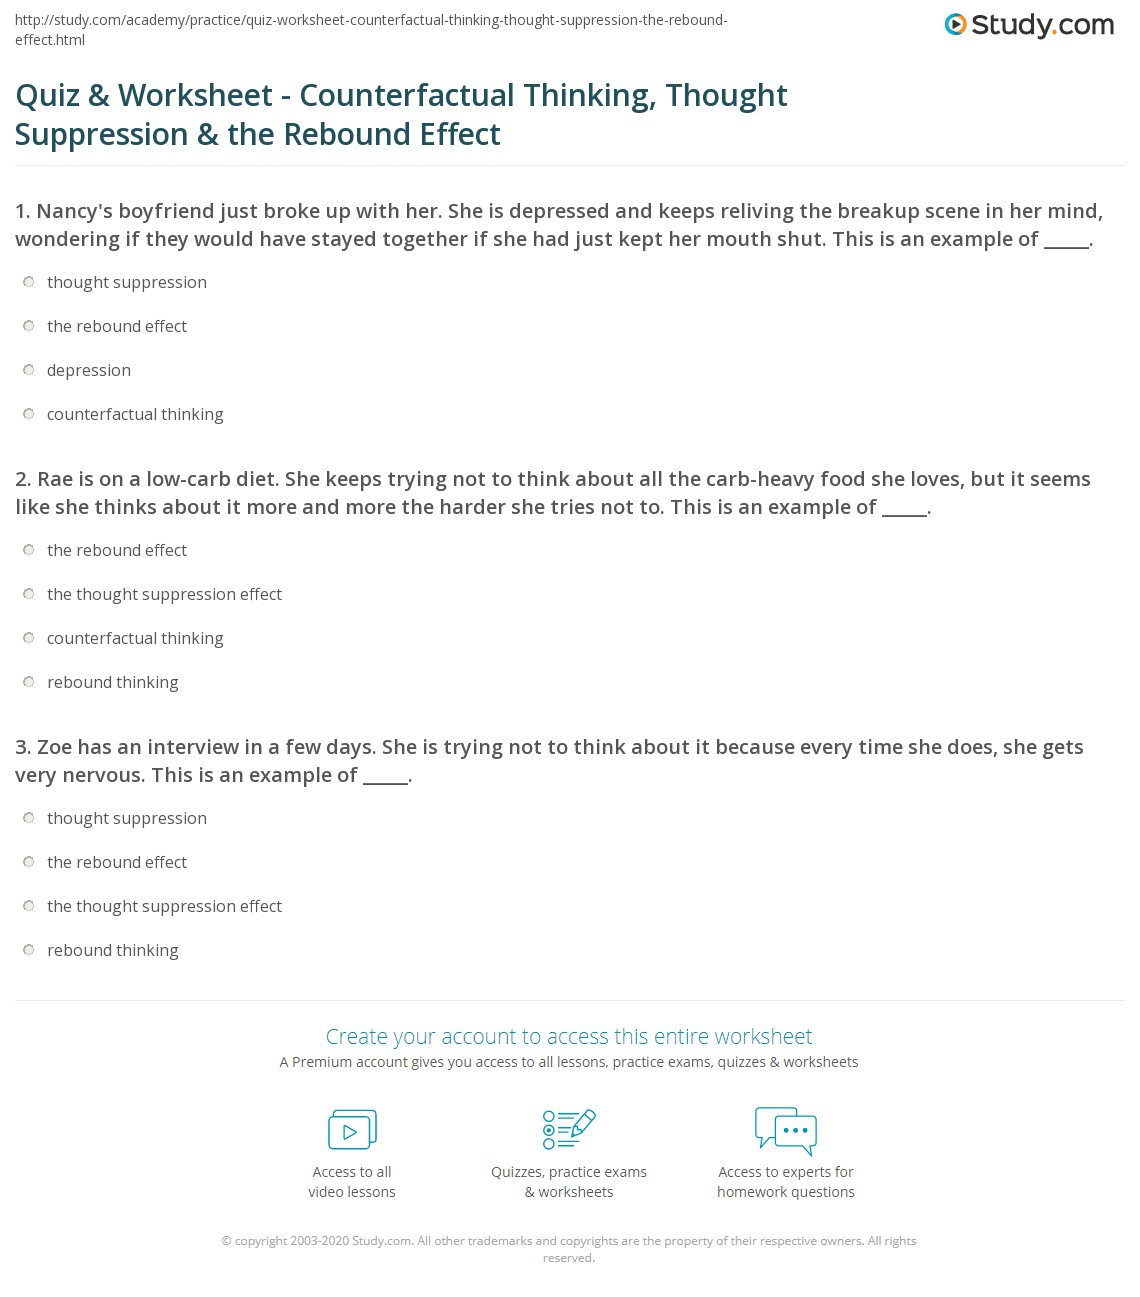 quiz worksheet counterfactual thinking thought suppression  print counterfactual thinking thought suppression the rebound effect worksheet